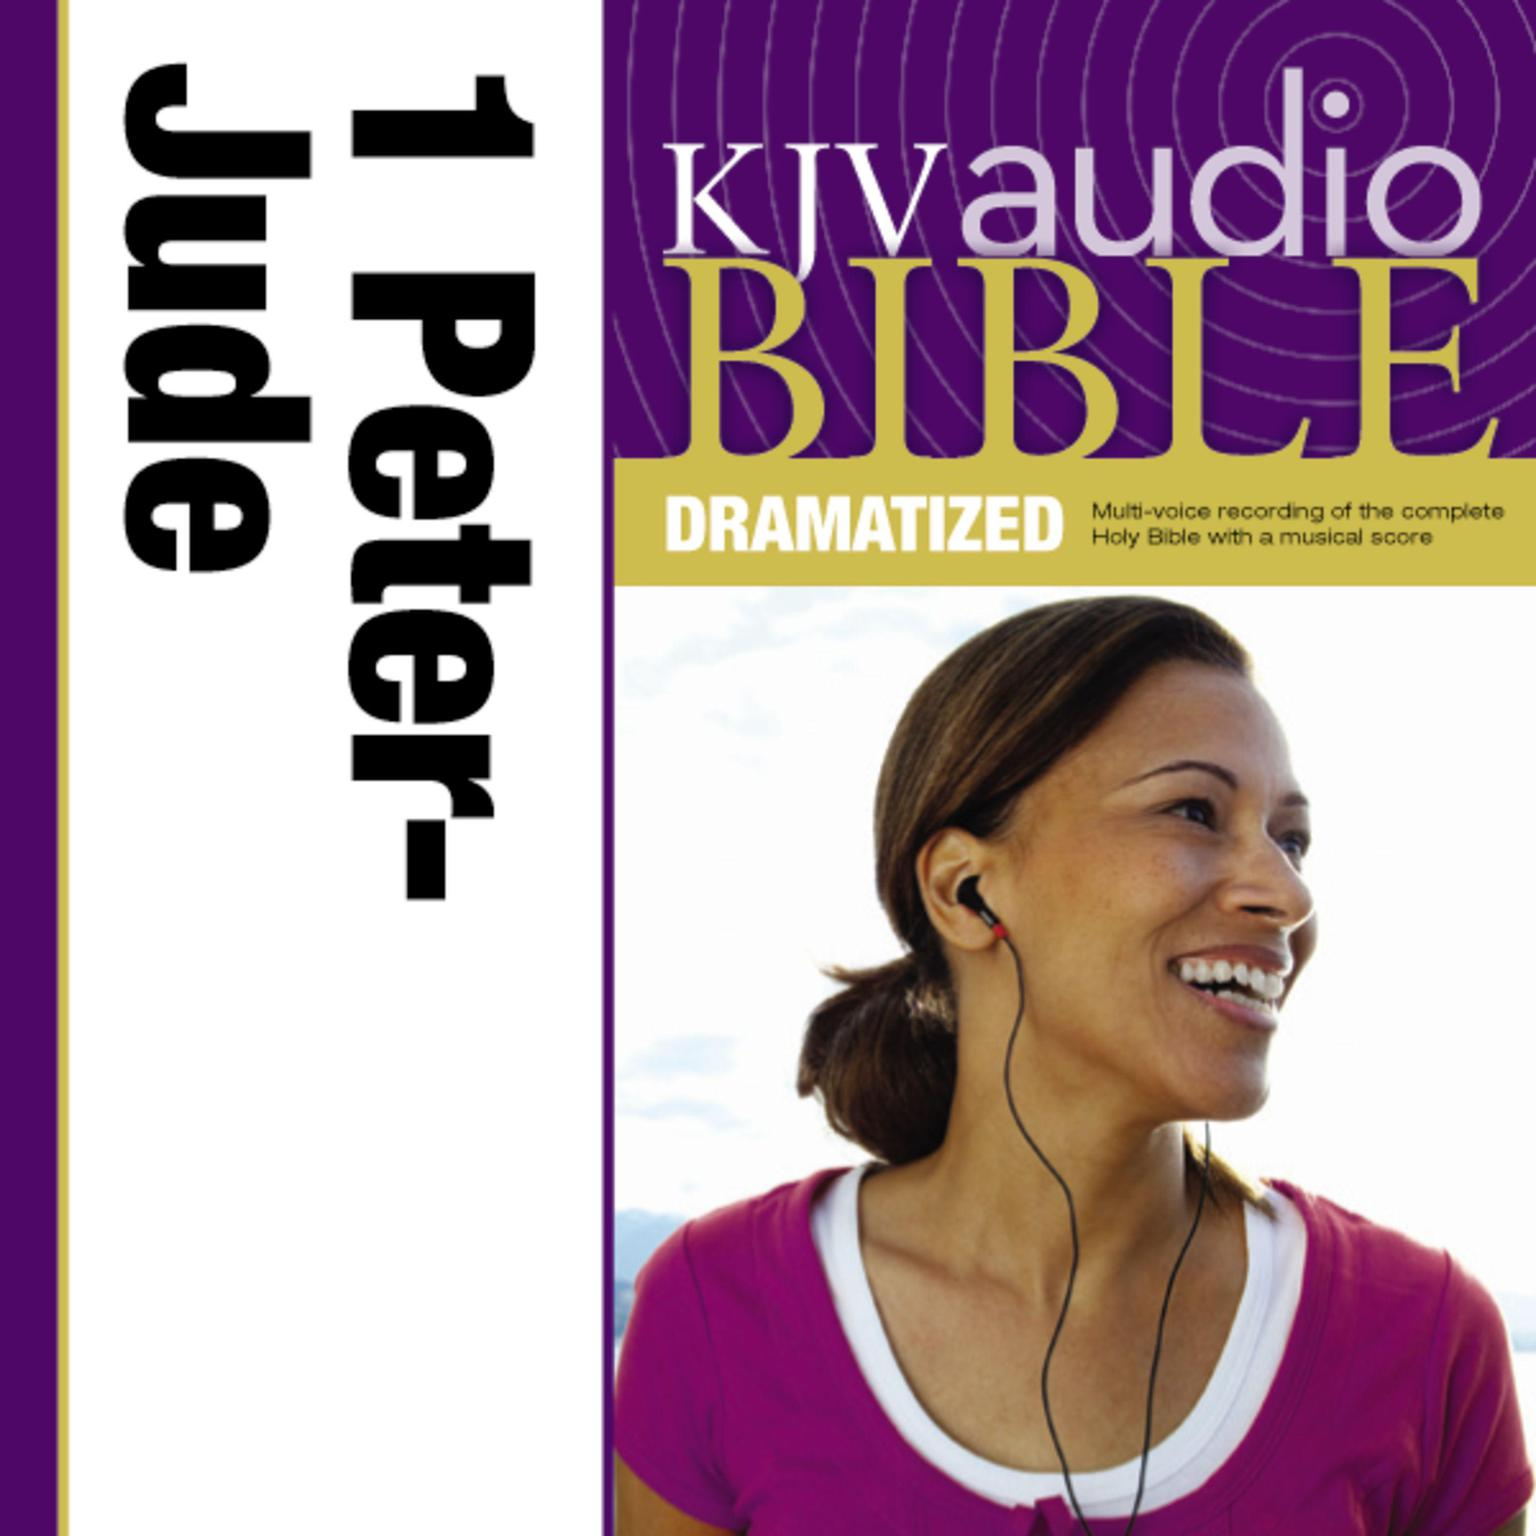 Printable KJV, Audio Bible, Dramatized: 1 and 2 Peter, 1, 2 and 3 John, and Jude, Audio Download Audiobook Cover Art